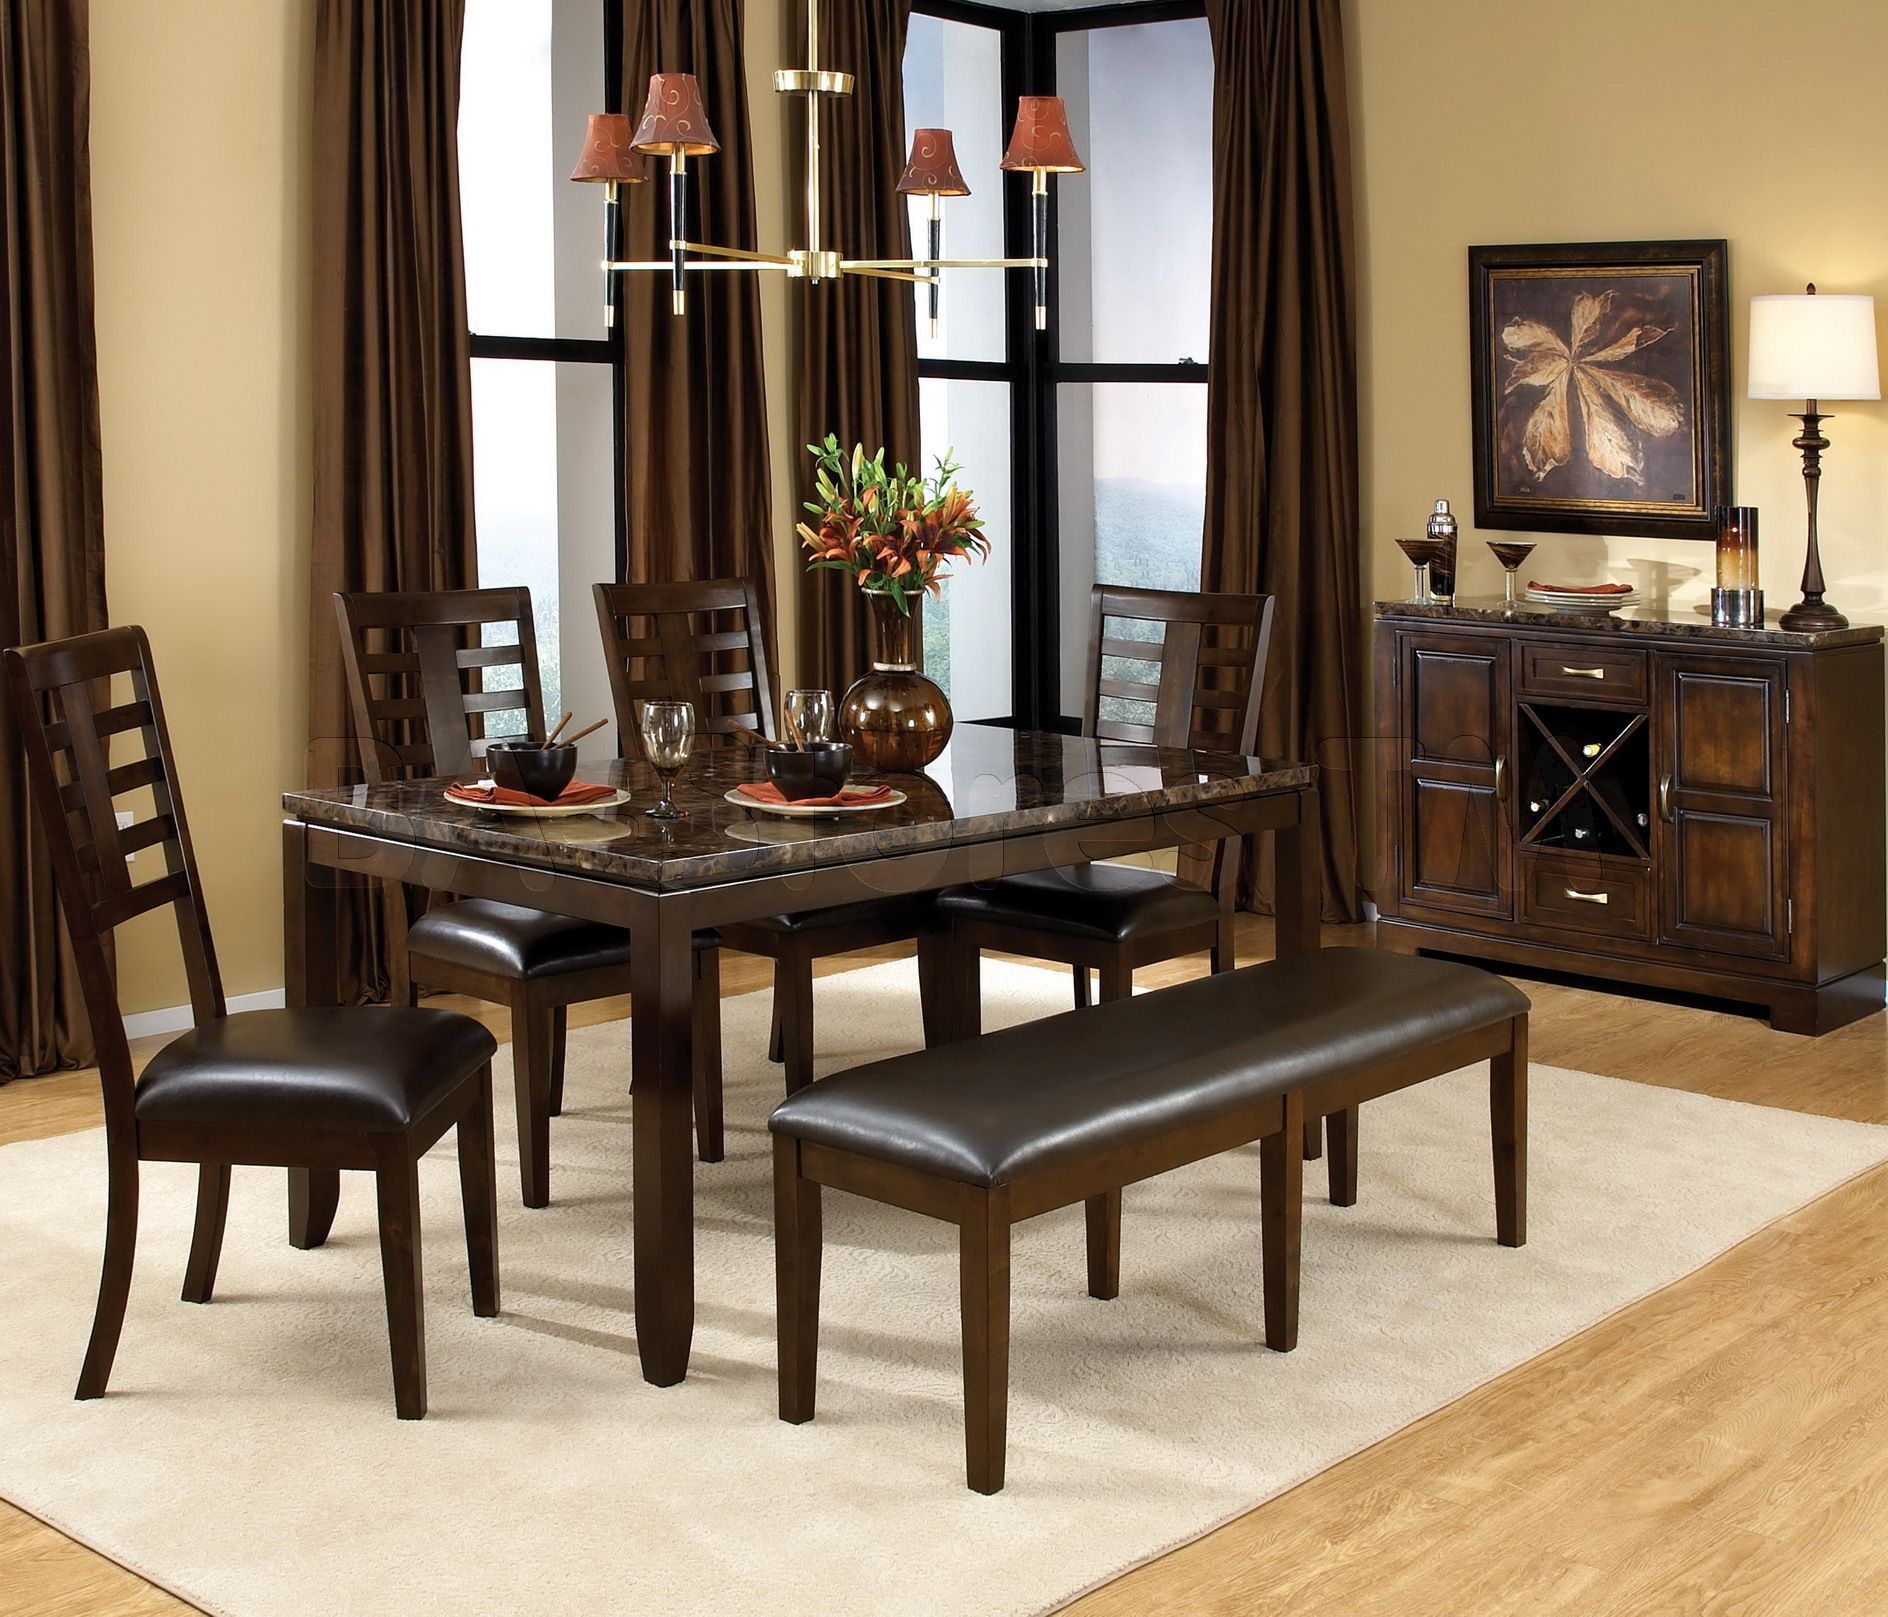 Superb Marvelous Classic Ikea Dining Sets With Brown Color And Single Bench On White Rugs